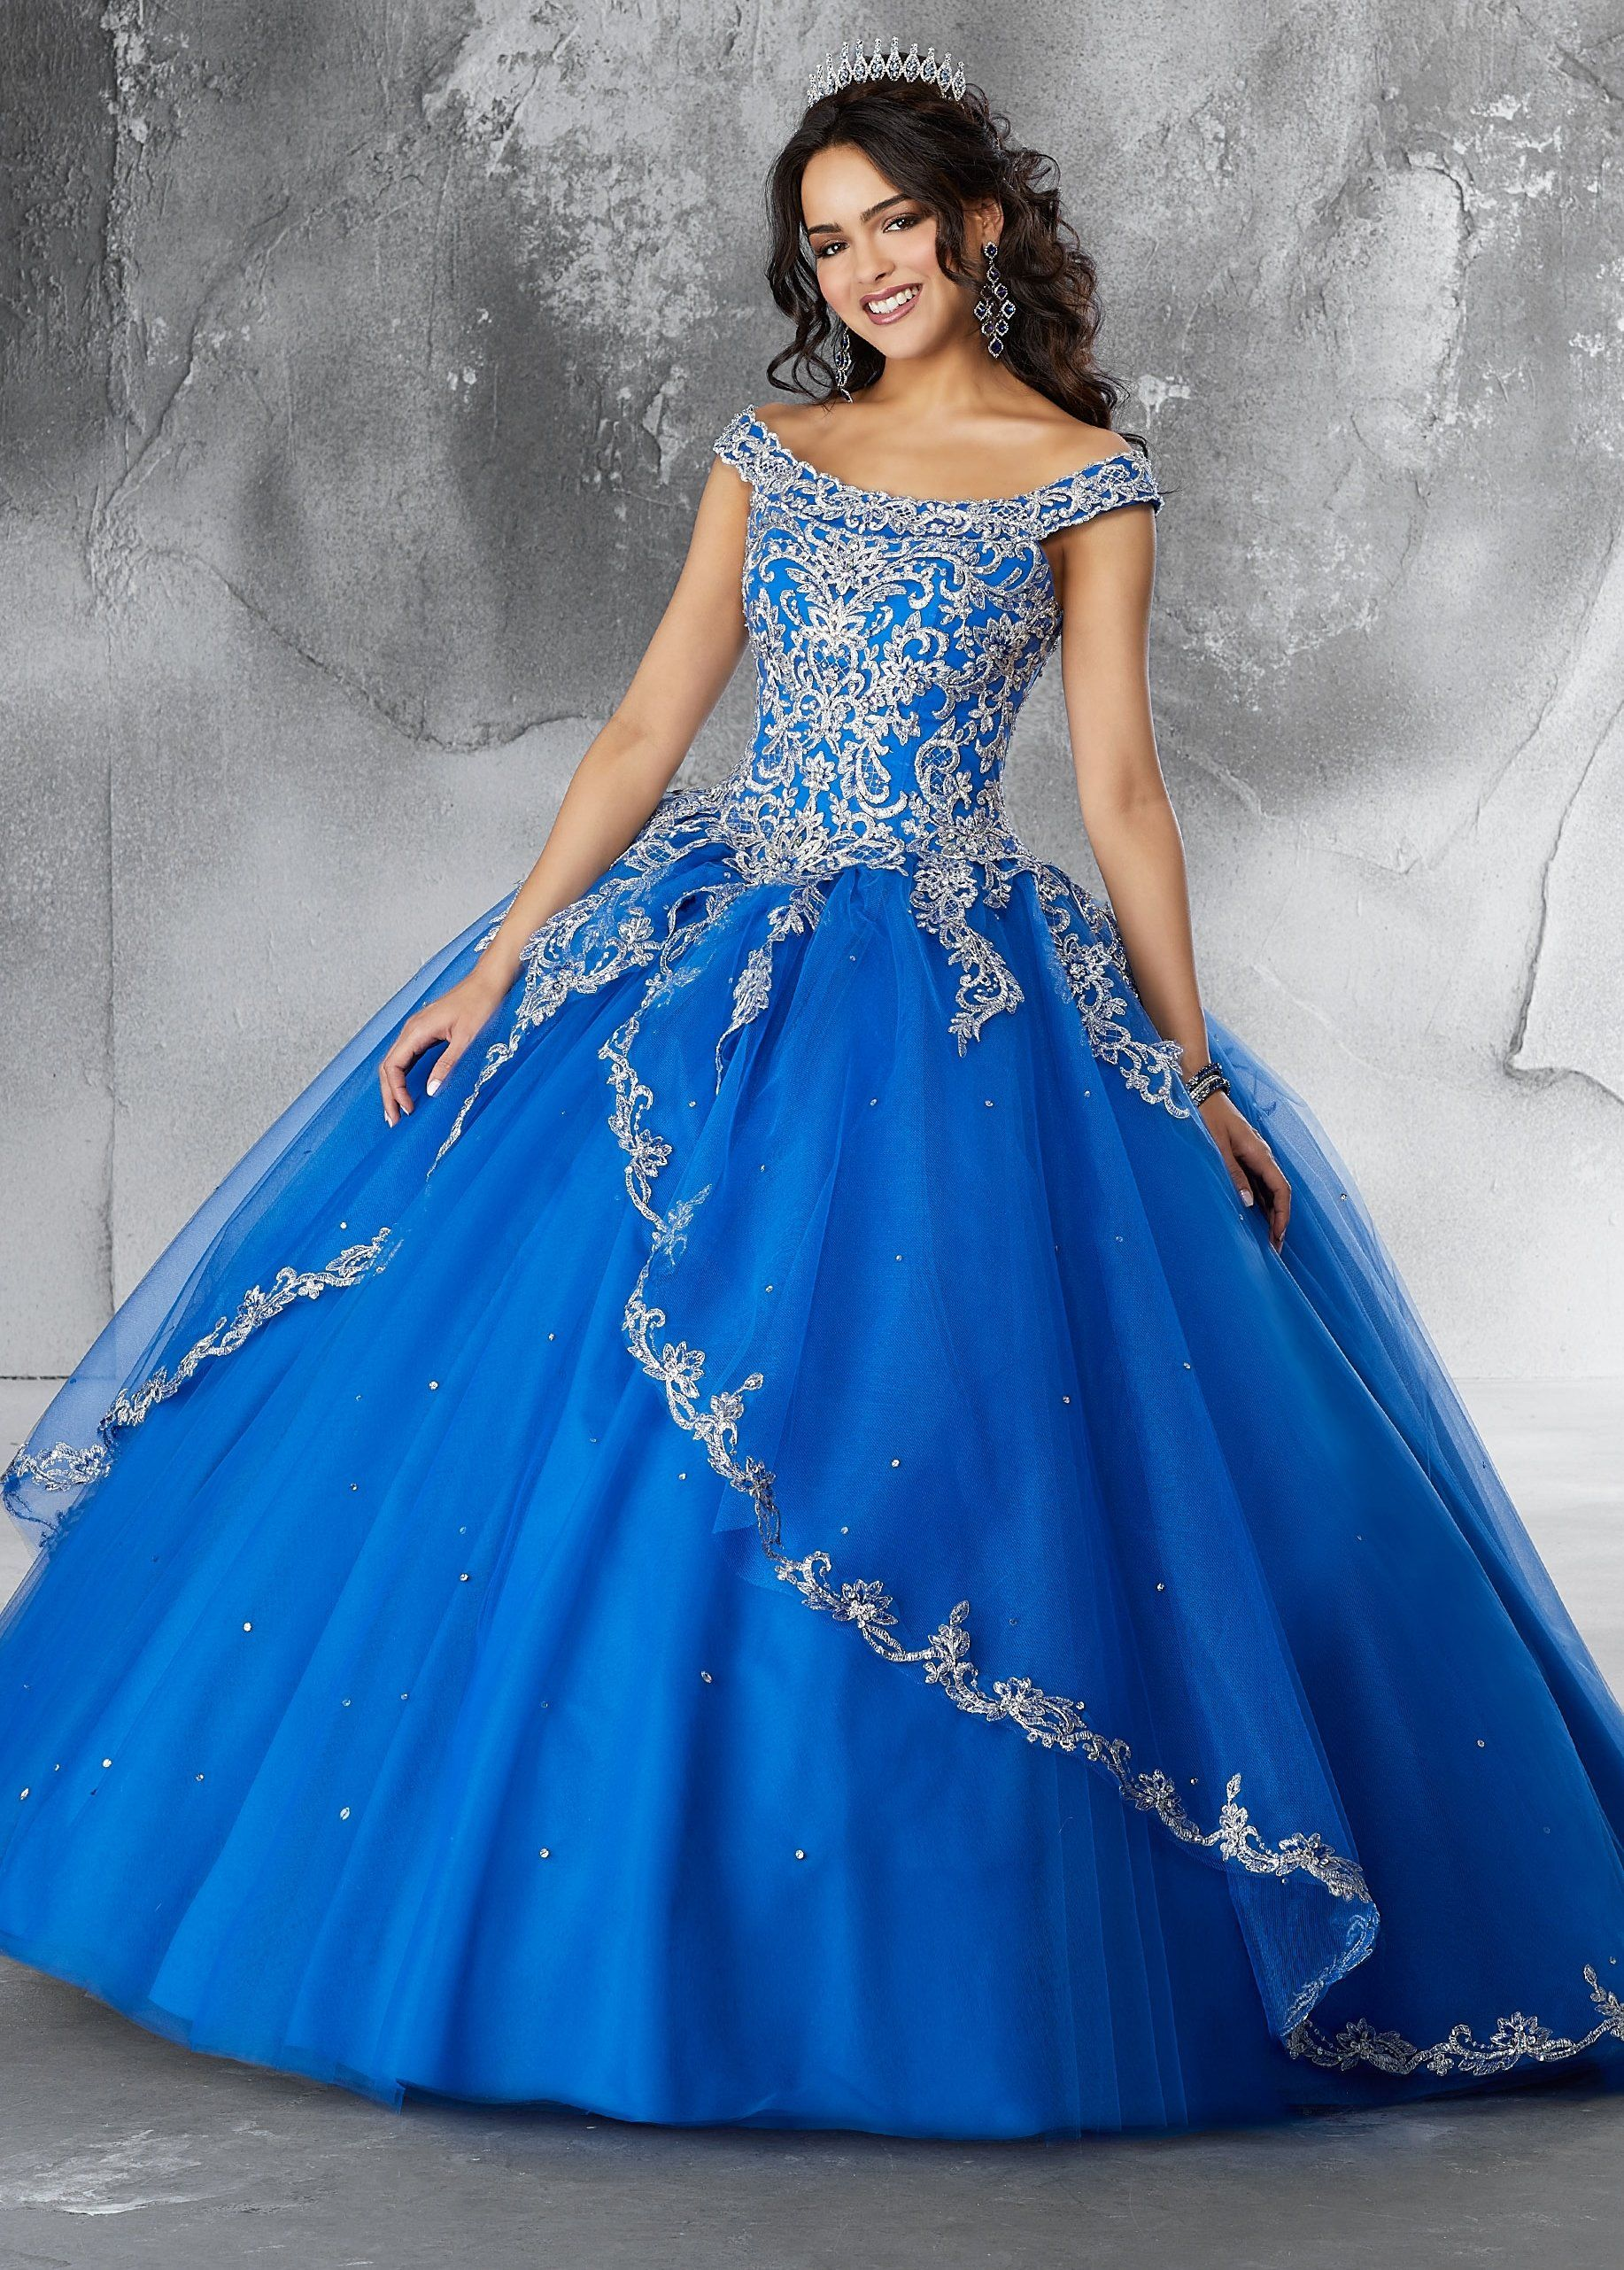 6fc94c75503 Off the Shoulder Quinceanera Dress by Mori Lee Vizcaya 89191 ...